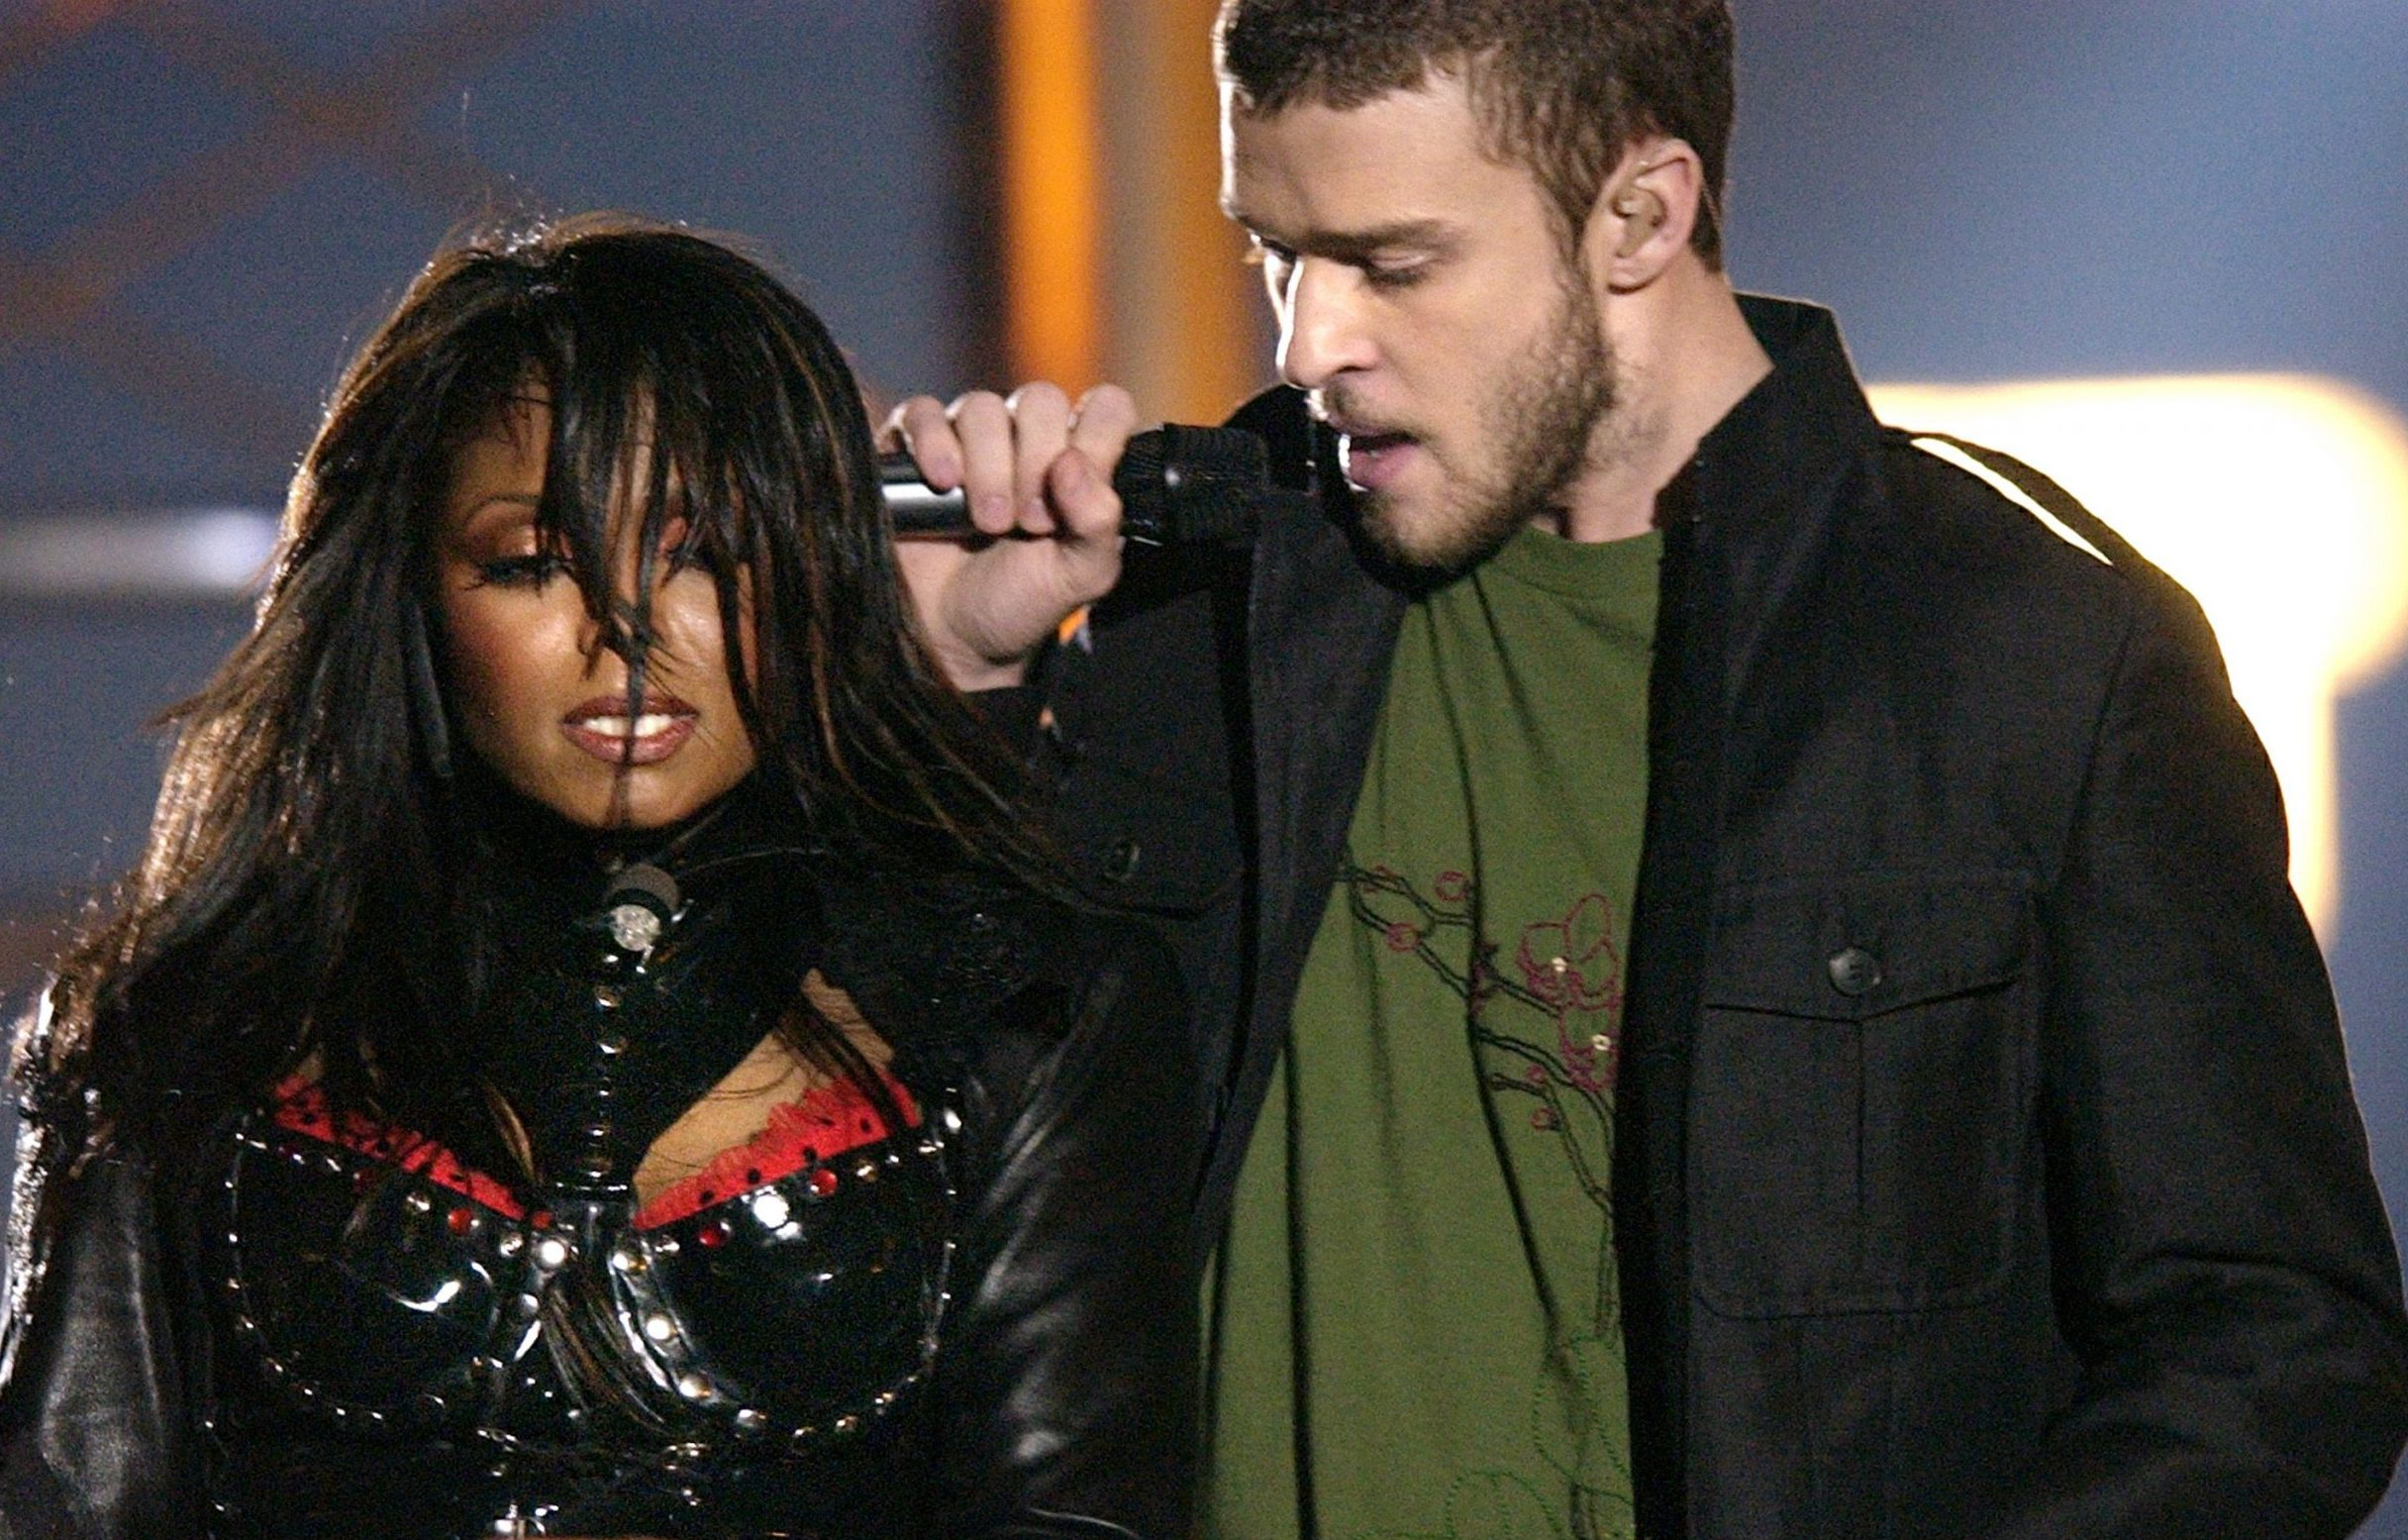 Janet Jackson pictured on the left perfoming with Justin Timberlake